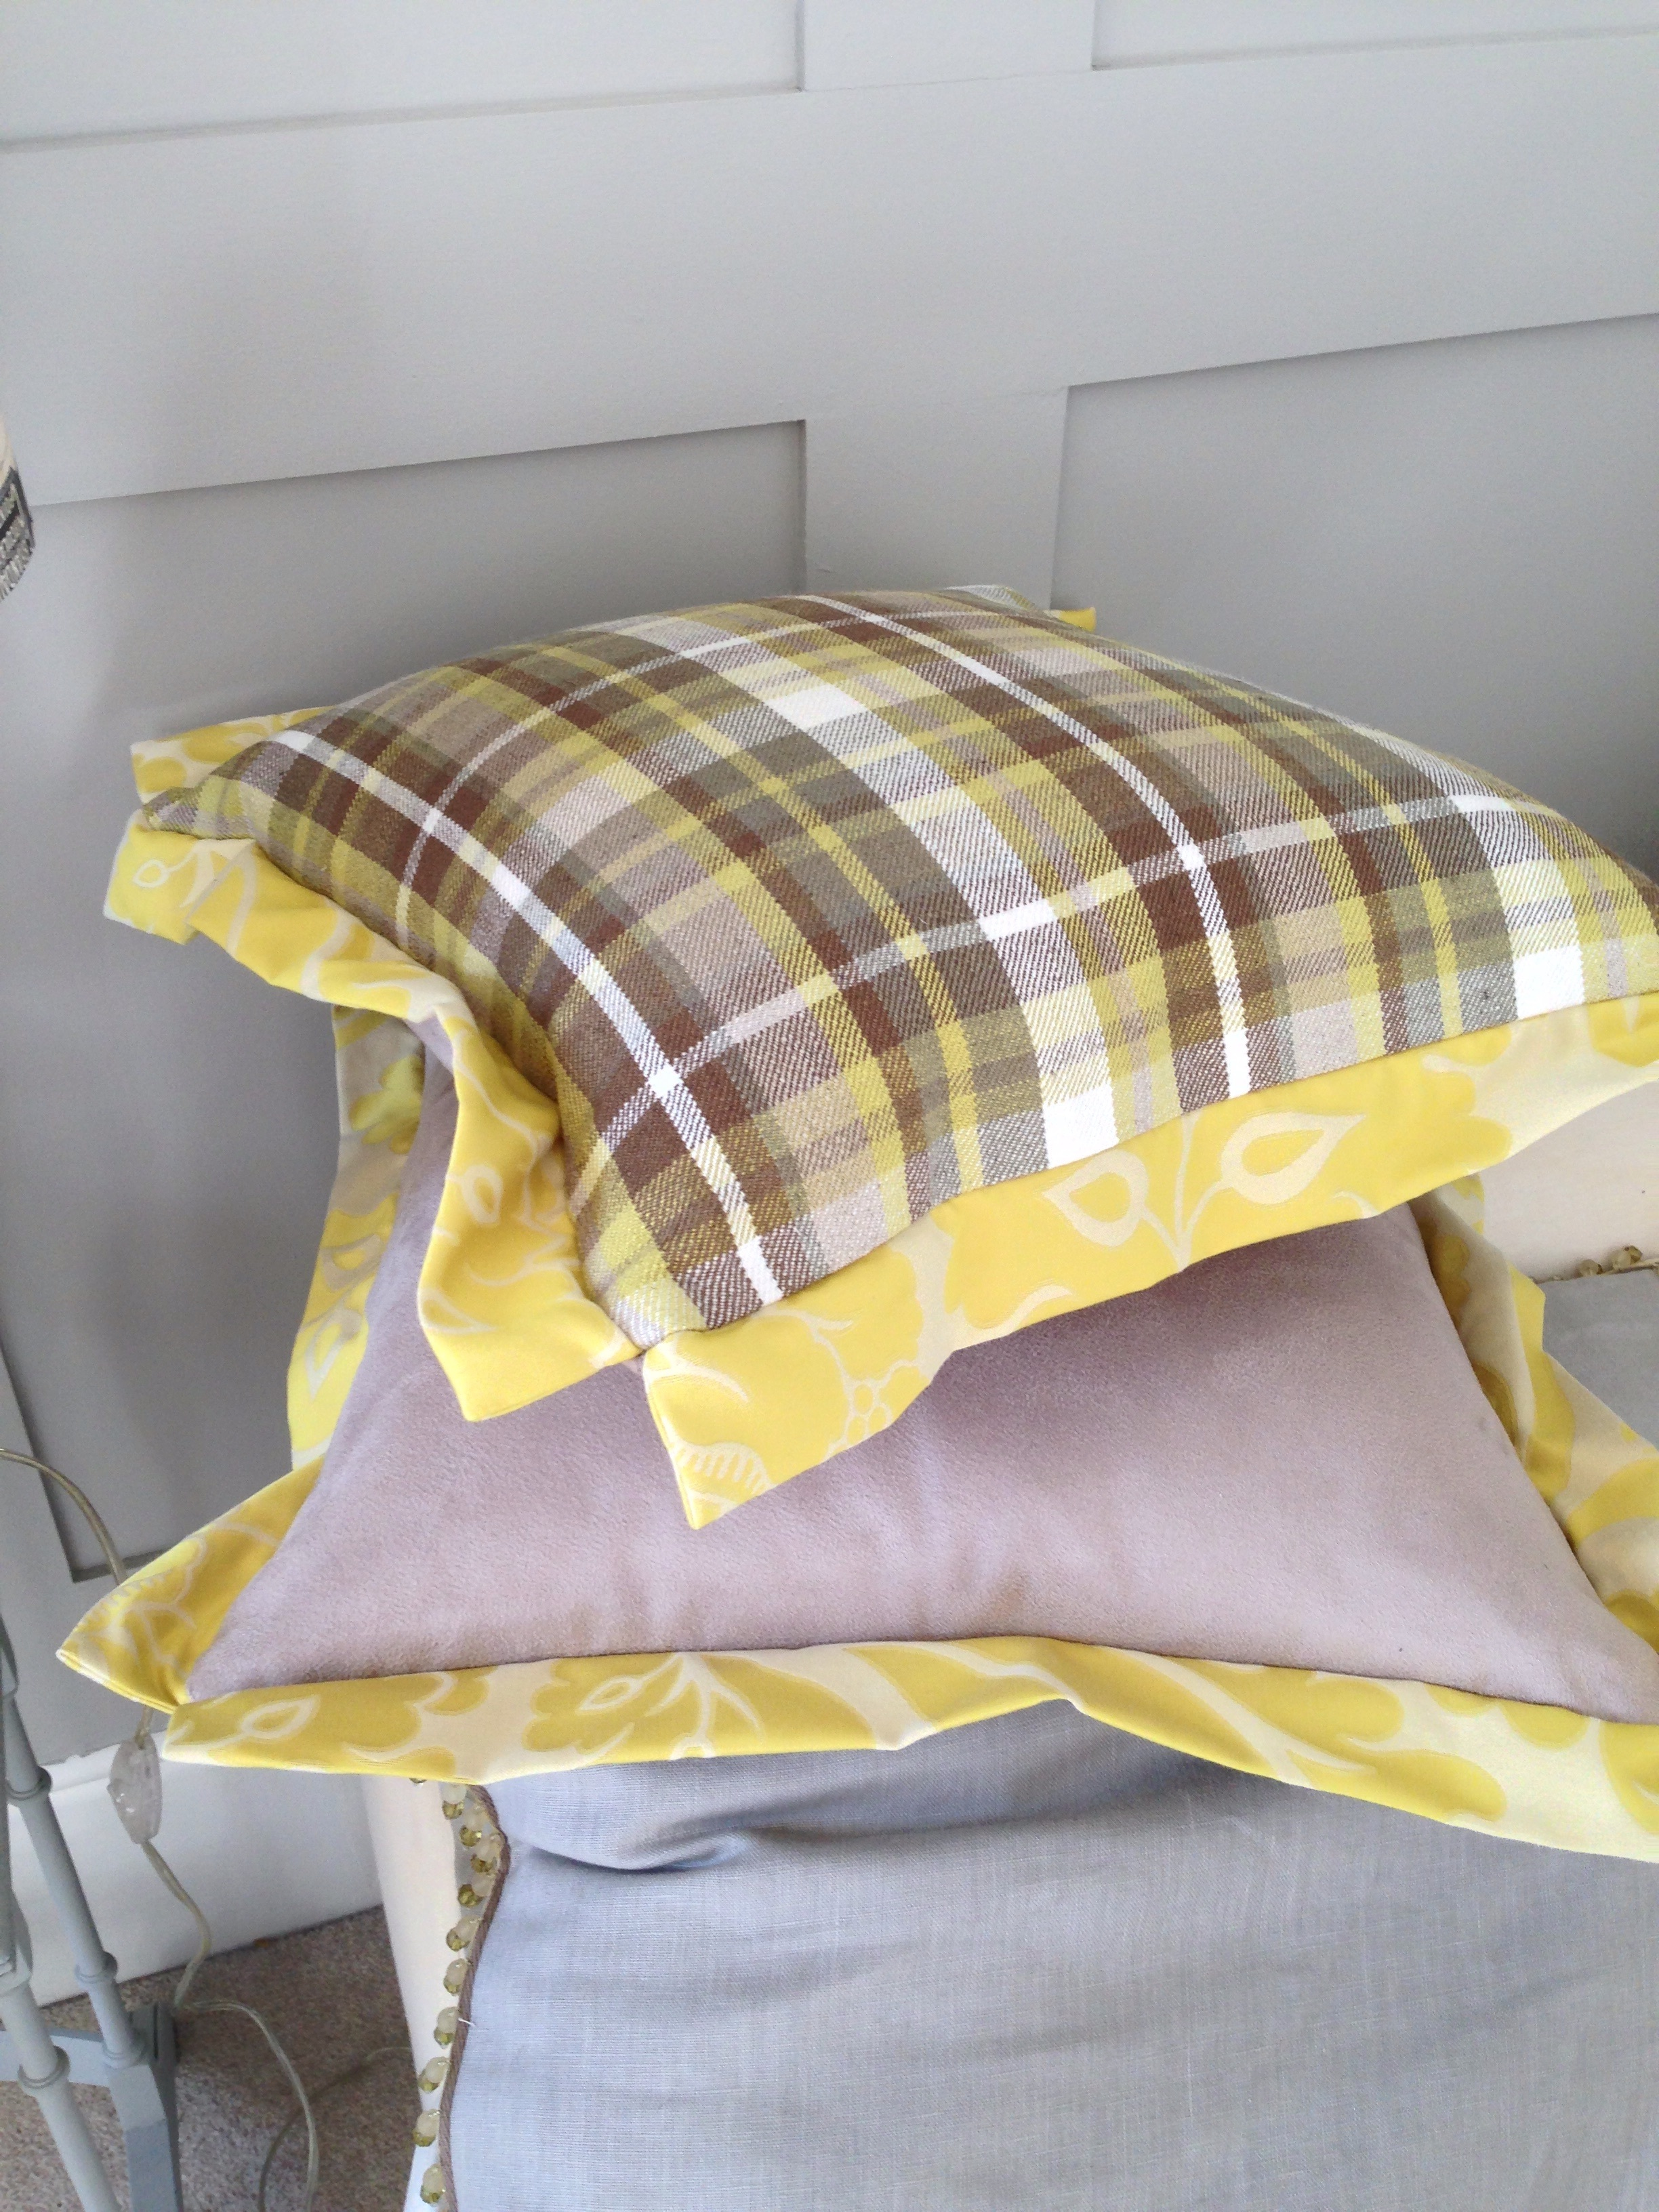 Faux suede with a Casamance check and a Robert Allen yellow damask